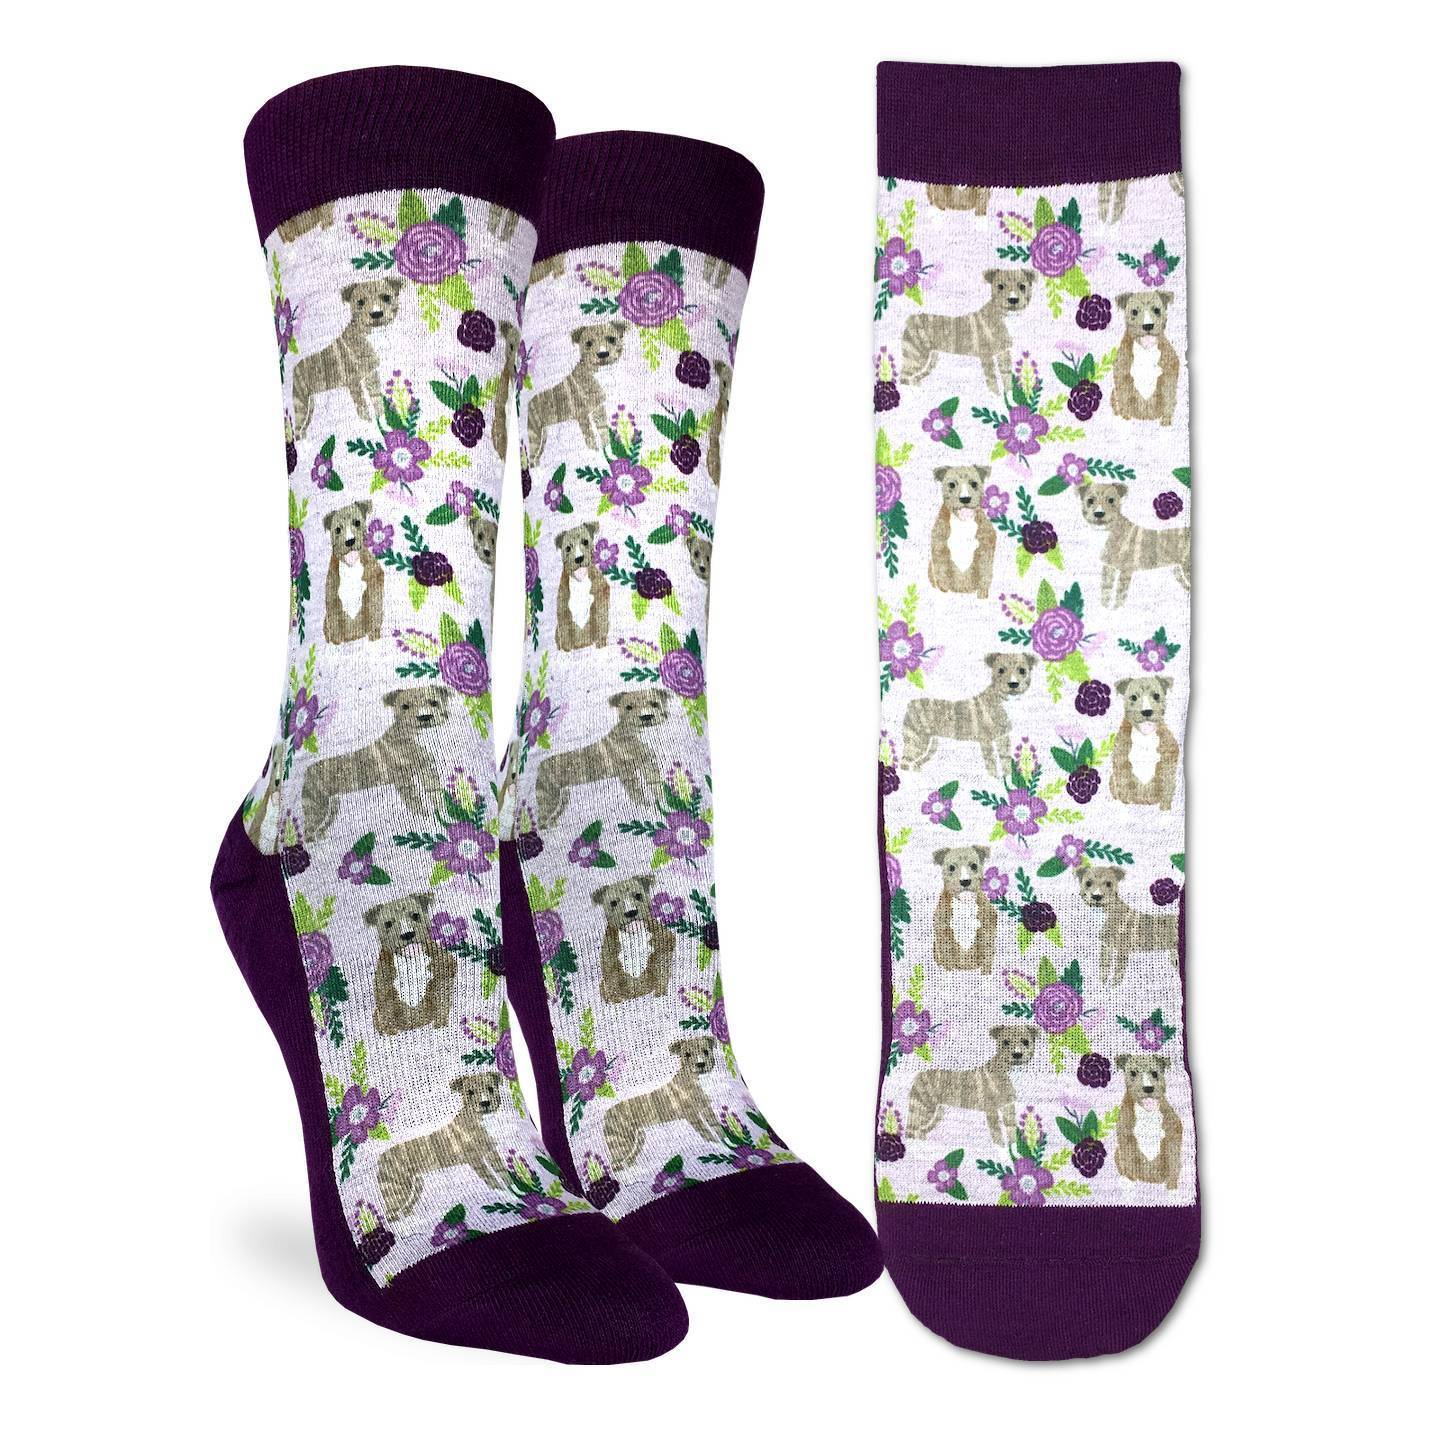 Women's Floral Pit Bull Socks - Good Luck Sock